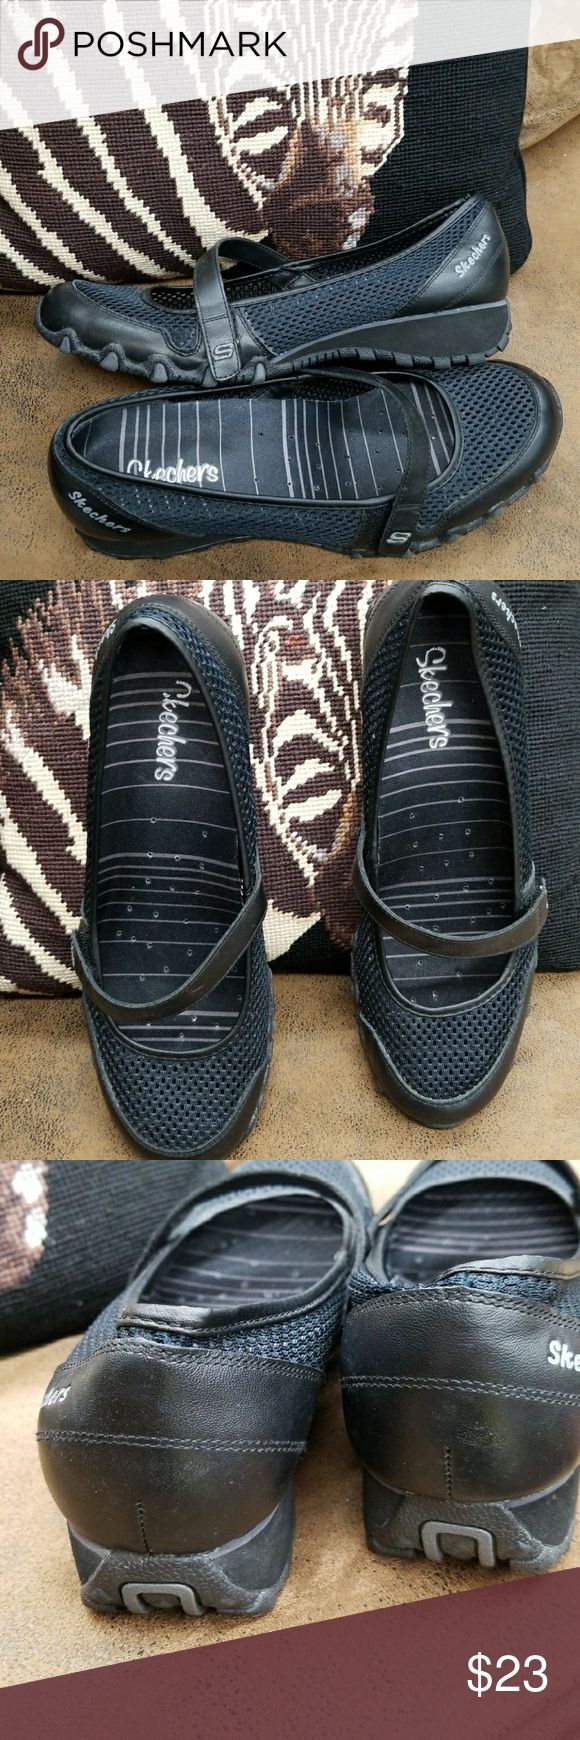 Skechers black Mary Jane's 9.5 Up for sale is a super cute pair of shoes that were worn very little.  I cannot find a size but I wear a size and 9 and they are a little bit too big for me. Cleaned and polished Skechers Shoes